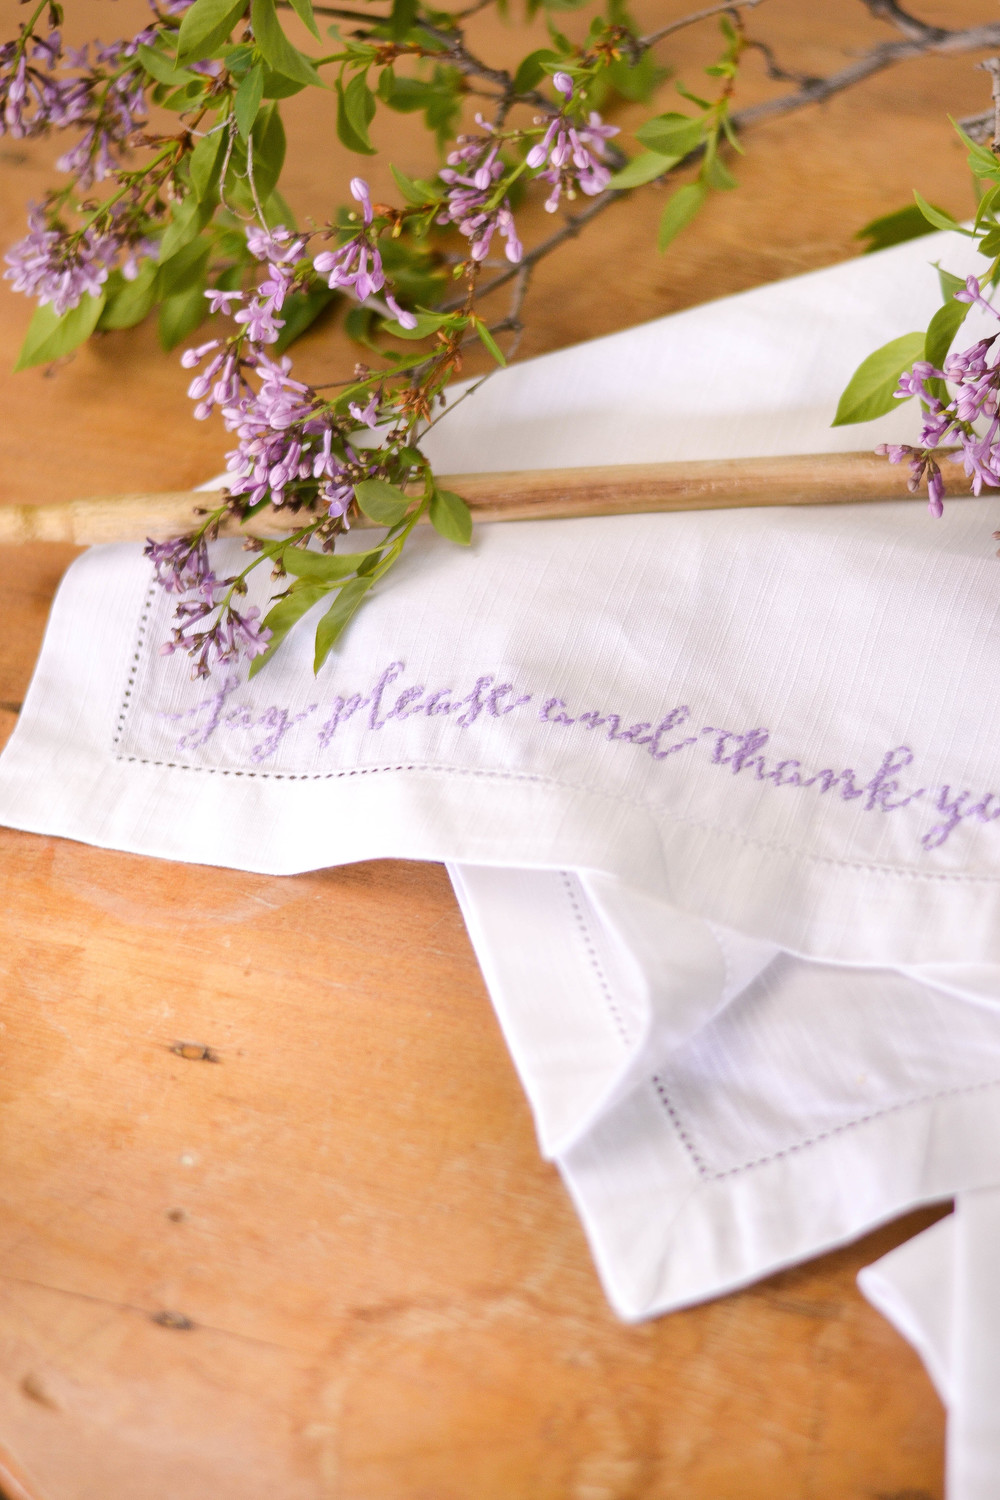 How to embroider cursive handwriting diy mother s day